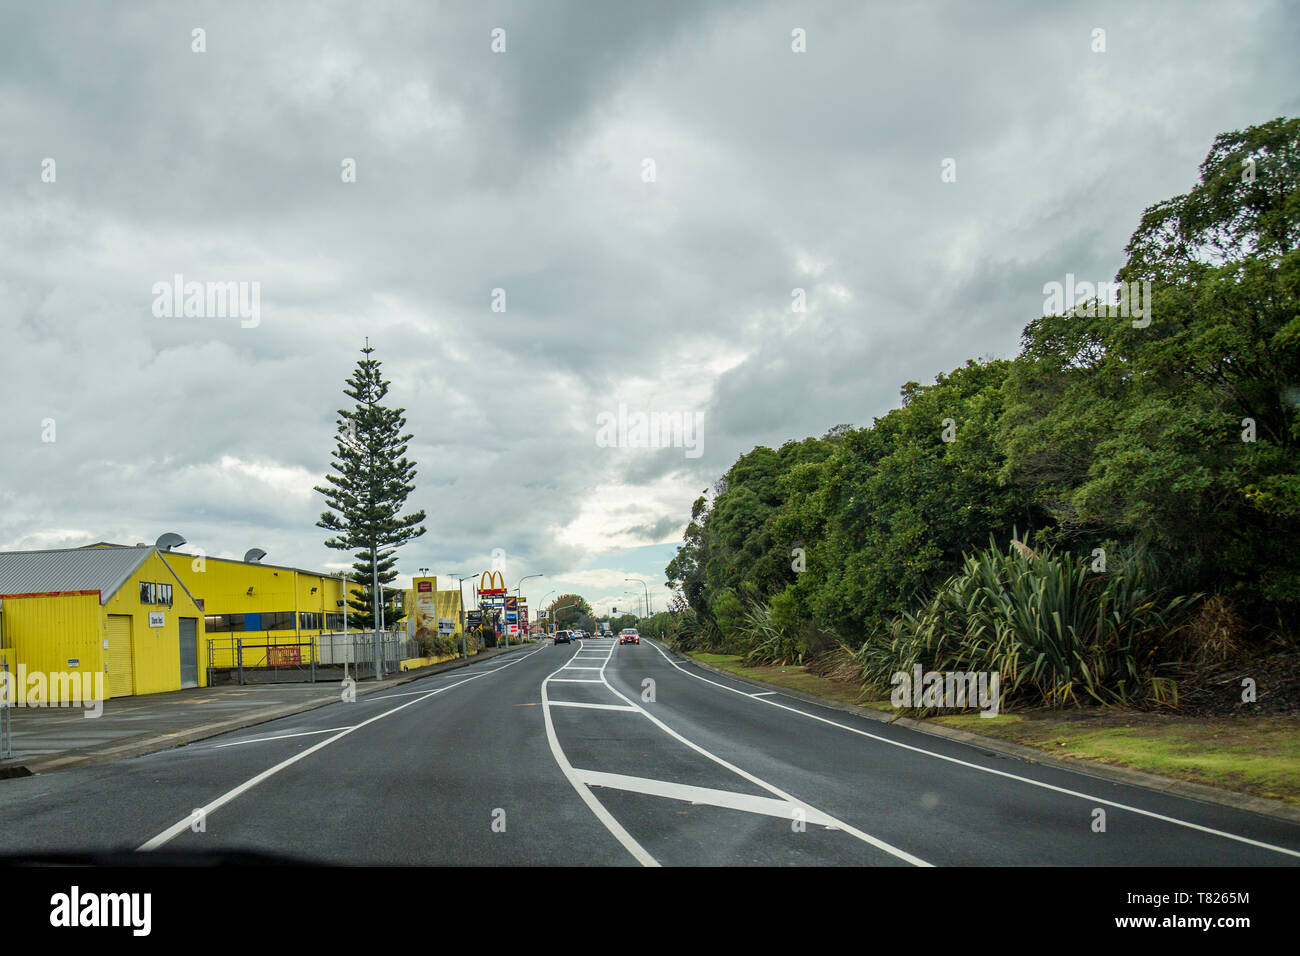 Huntly, Waikato SH1. Driving past large yellow industrial building, Ernest Adams Gluten Free bakery facility, also makes Vogels and Quality Bakers - Stock Image